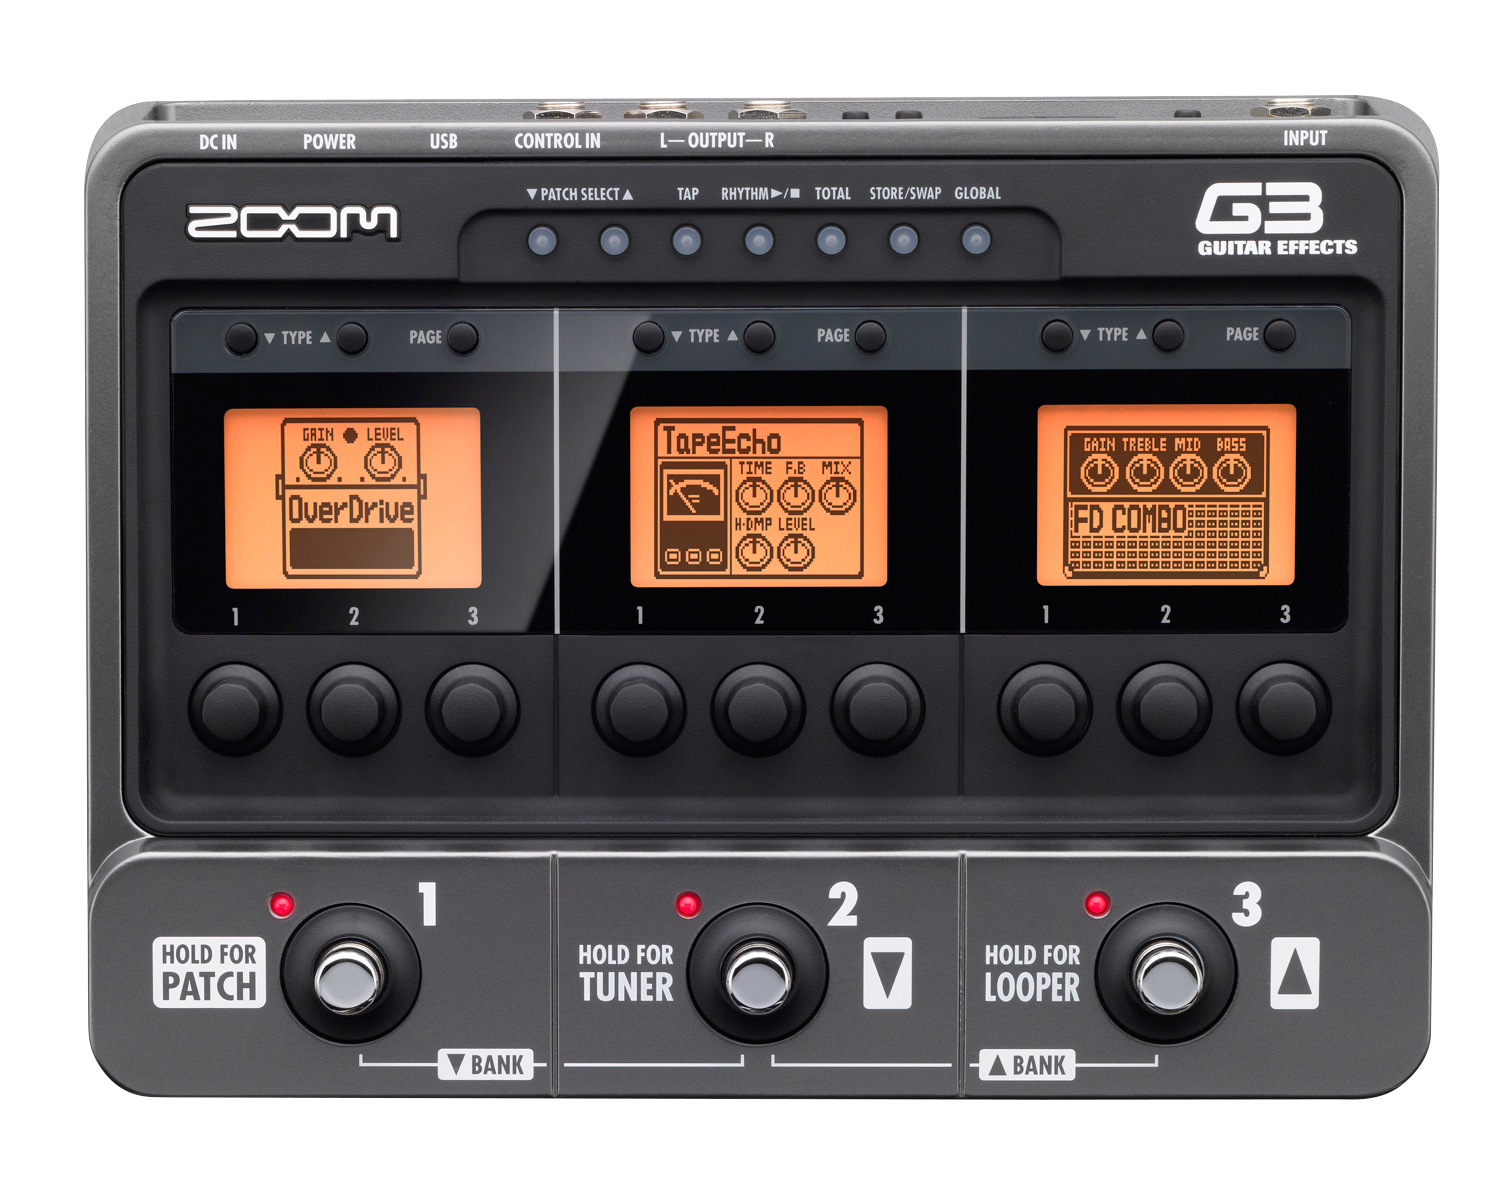 G3 Guitar Effects & Amp Simulator Pedal | Zoom